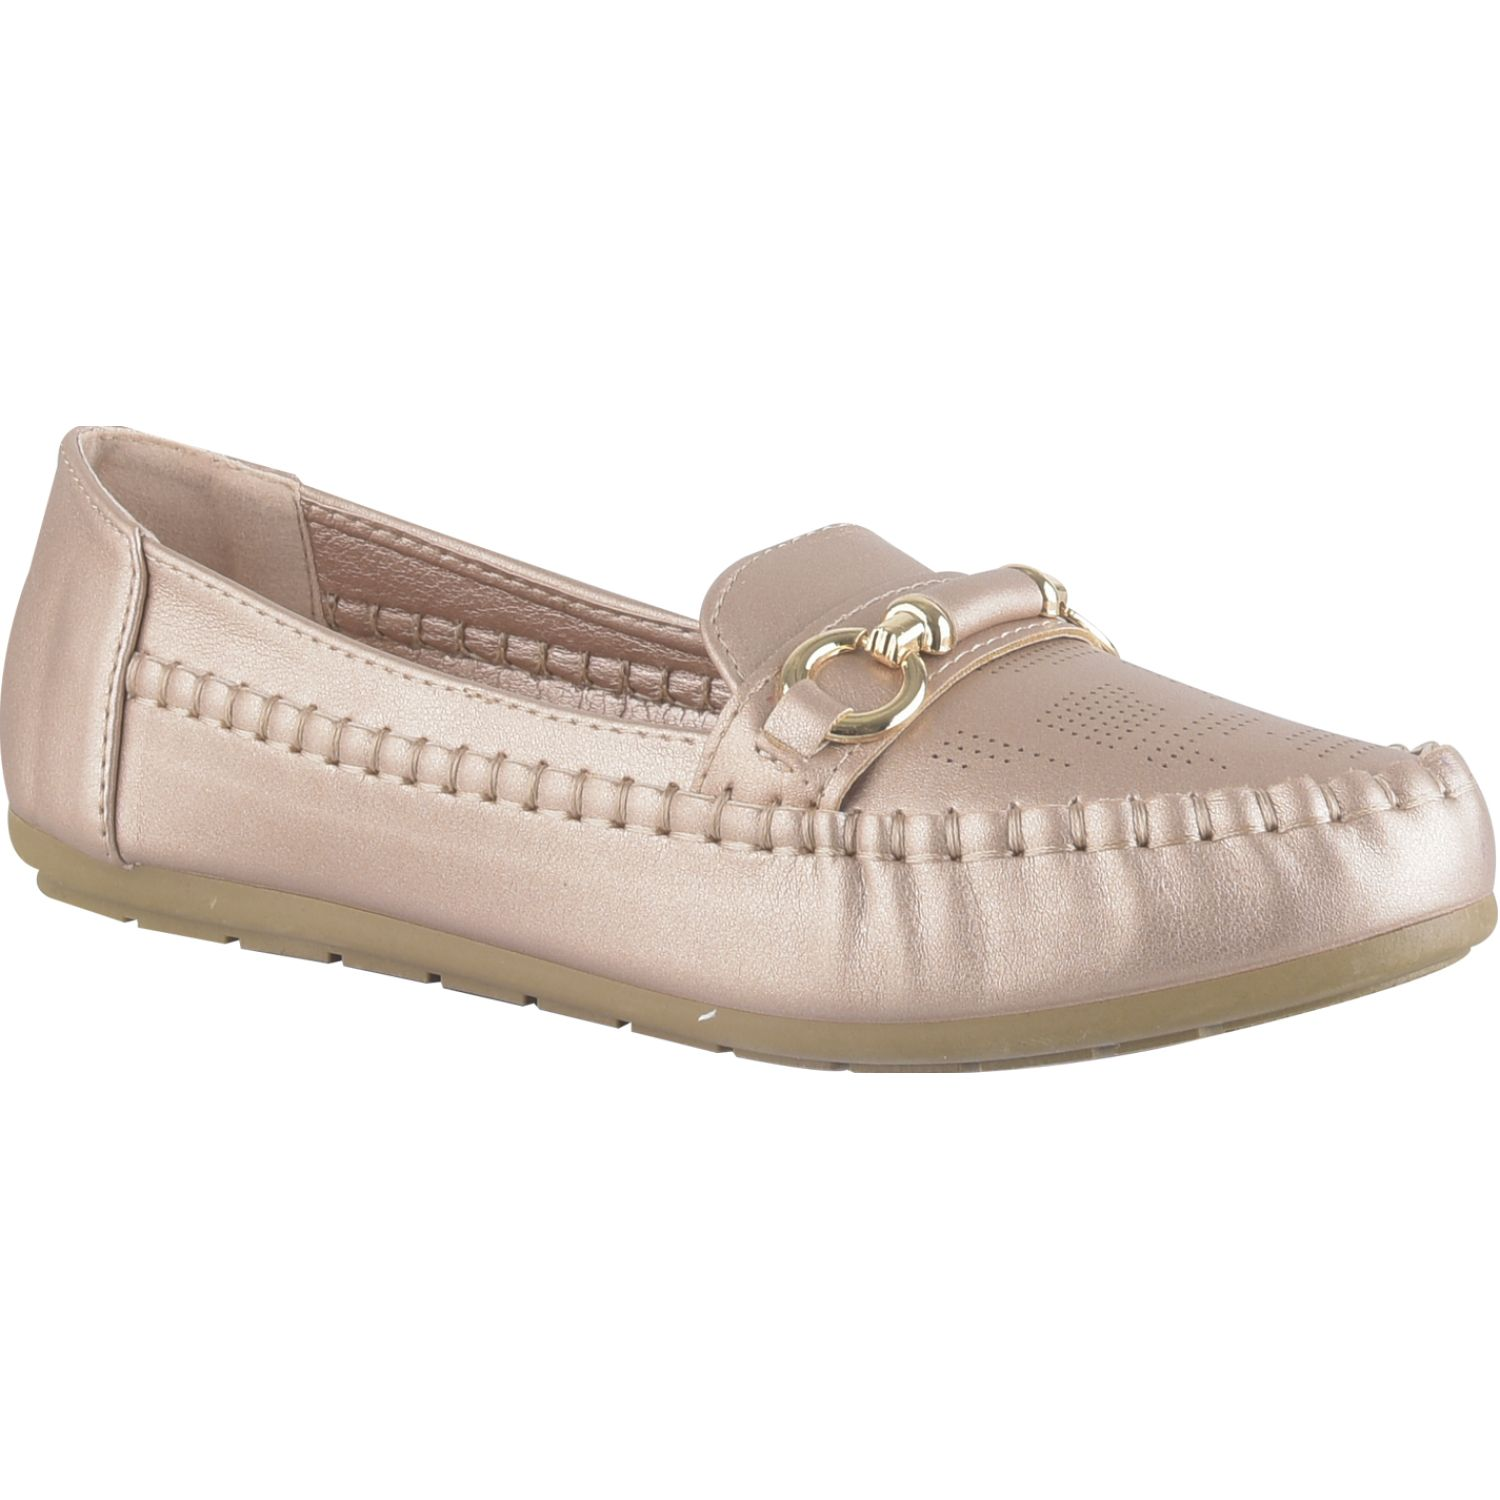 Platanitos M 3a10 Champagne Mocasines y slip-ons